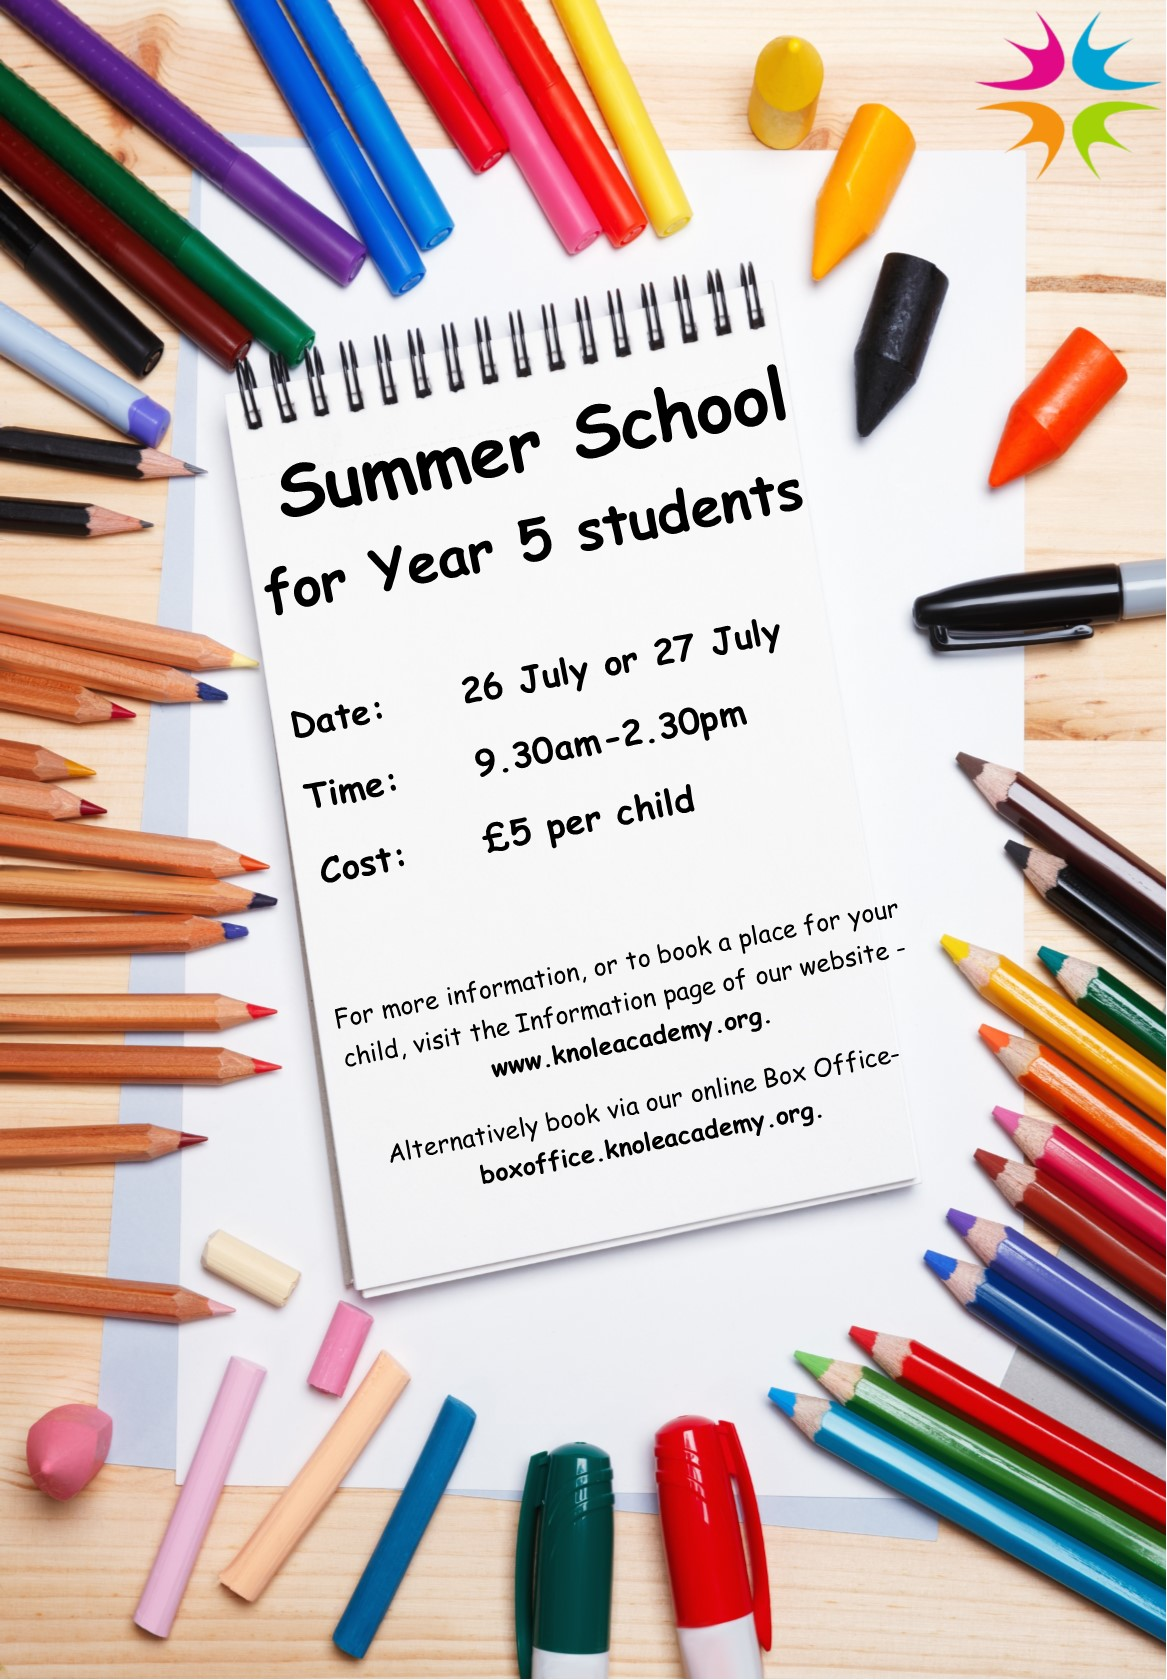 Summer School for Year 5s poster image